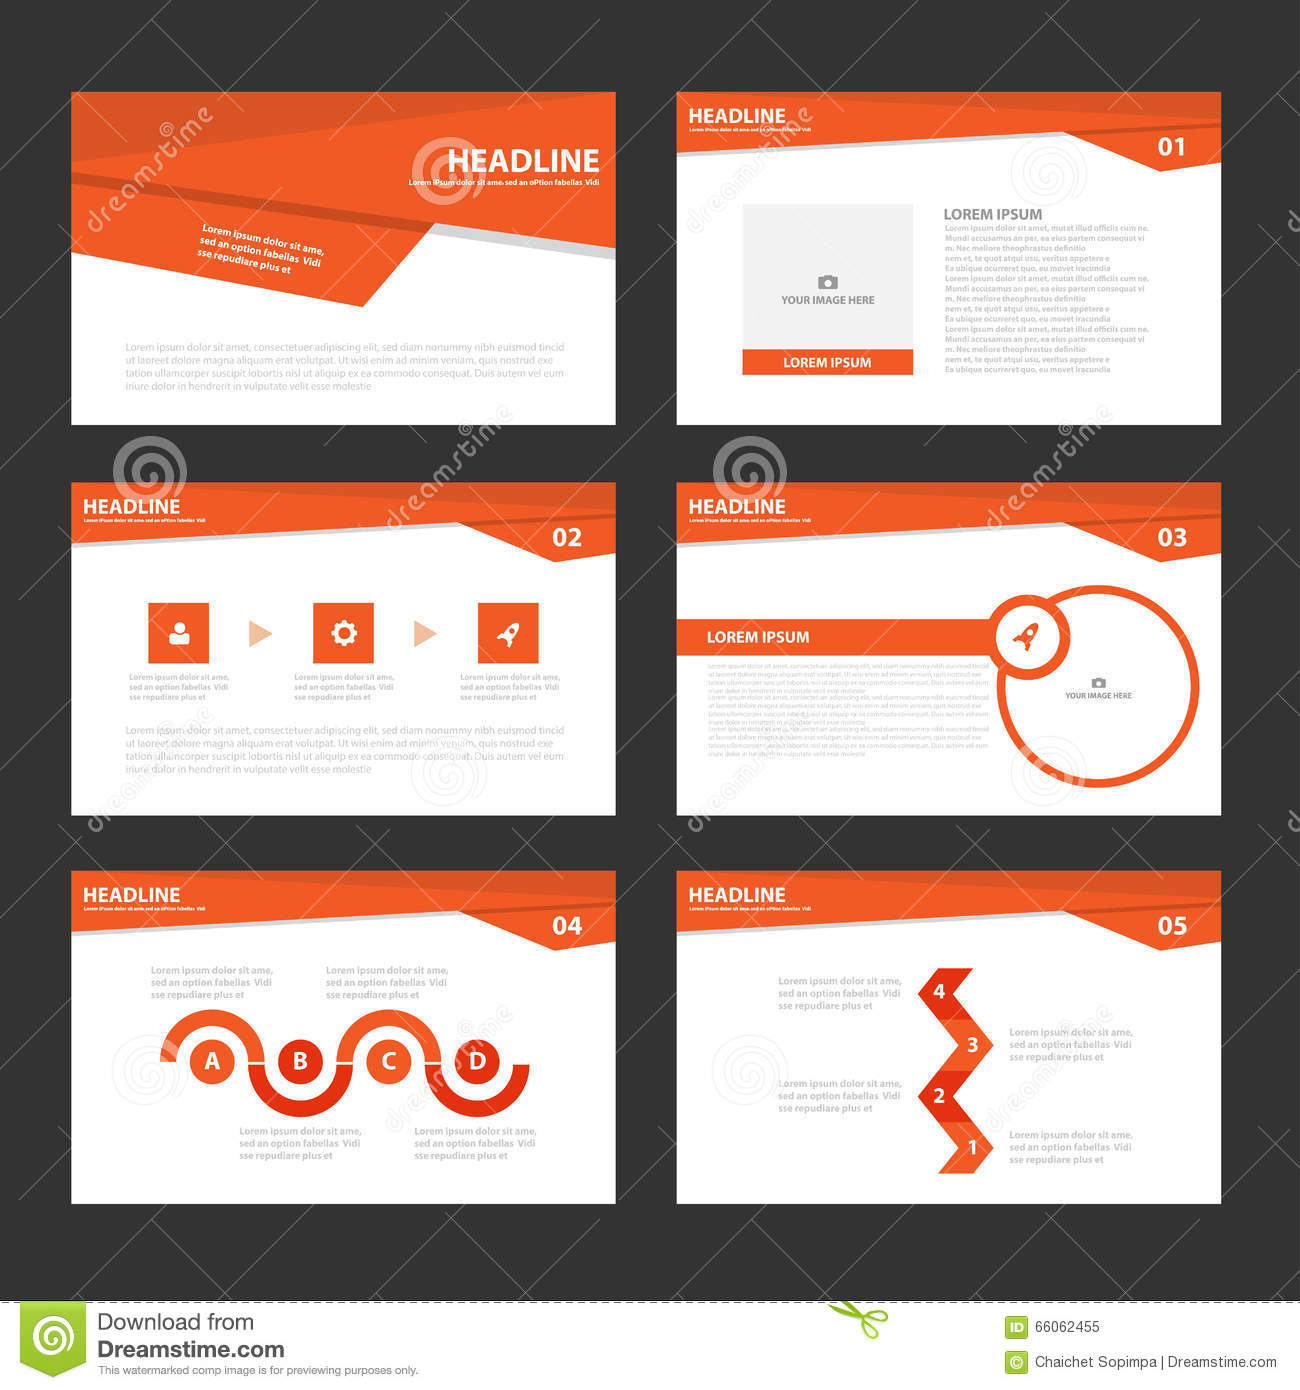 red presentation templates infographic elements flat design set red presentation templates infographic elements flat design set for brochure flyer leaflet marketing royalty stock